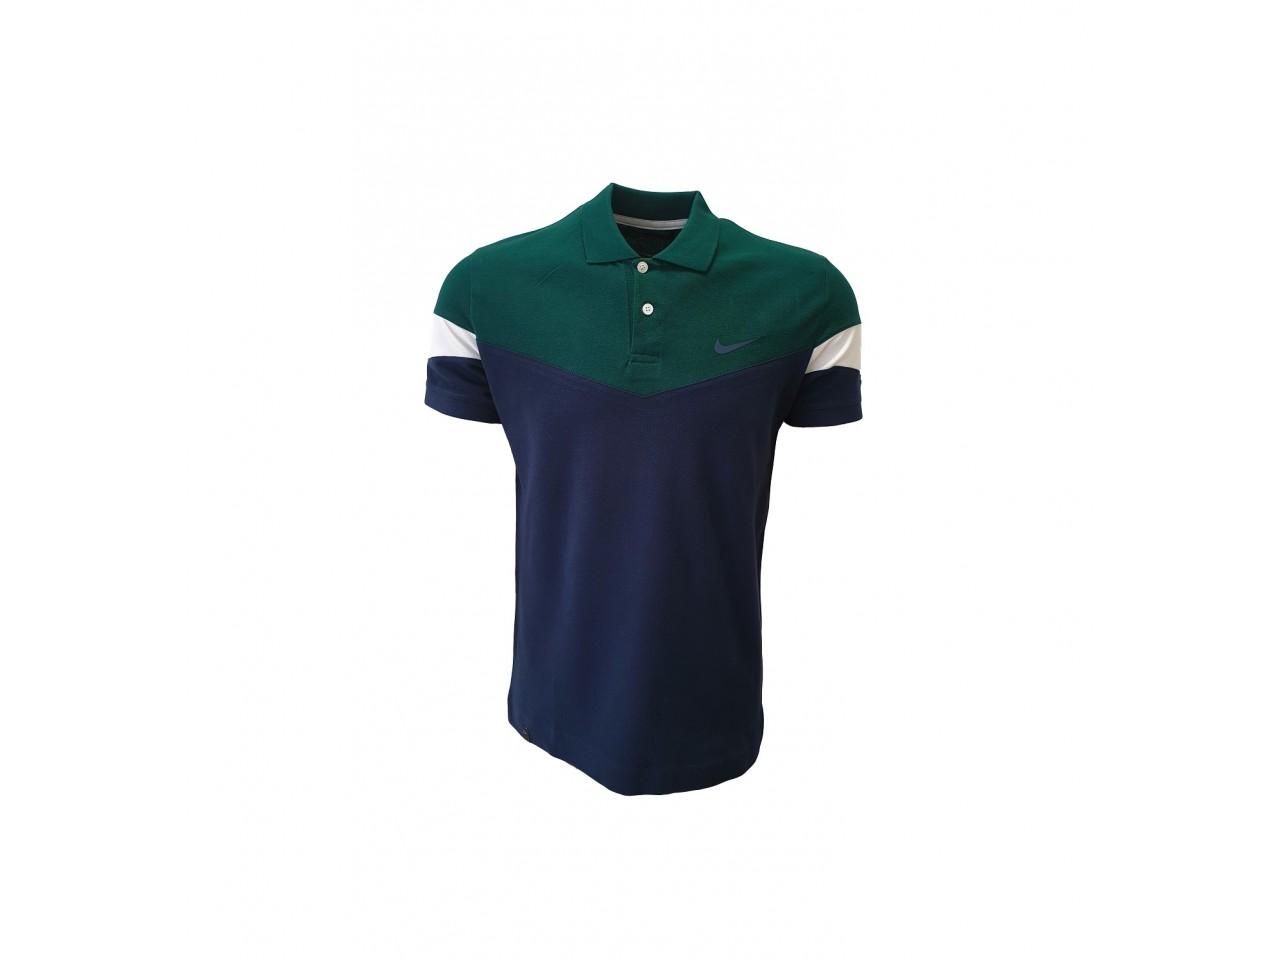 Nike Polo T-Shirt Dark Blue Green